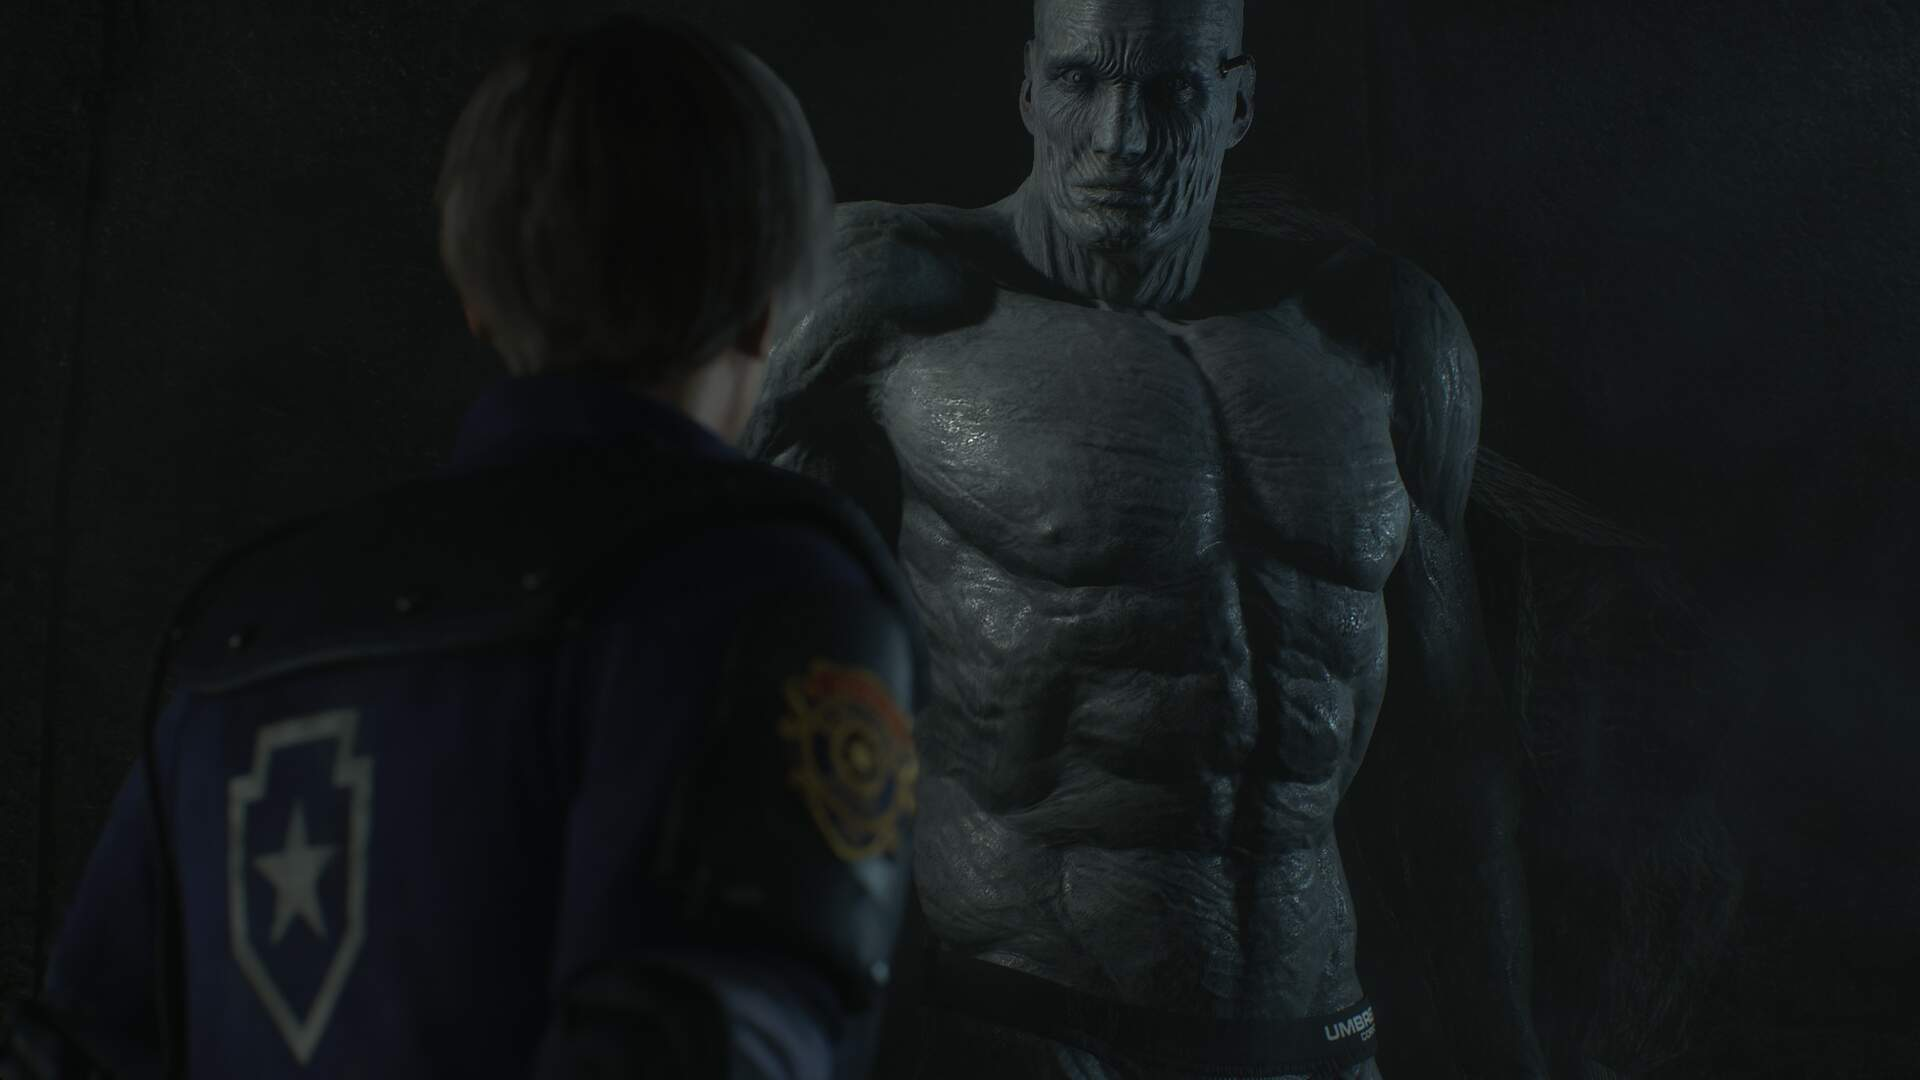 Your Favorite Resident Evil 2 Character Can Wear a Thong With New Mod, Assuming Your Favorite Character is Mr. X